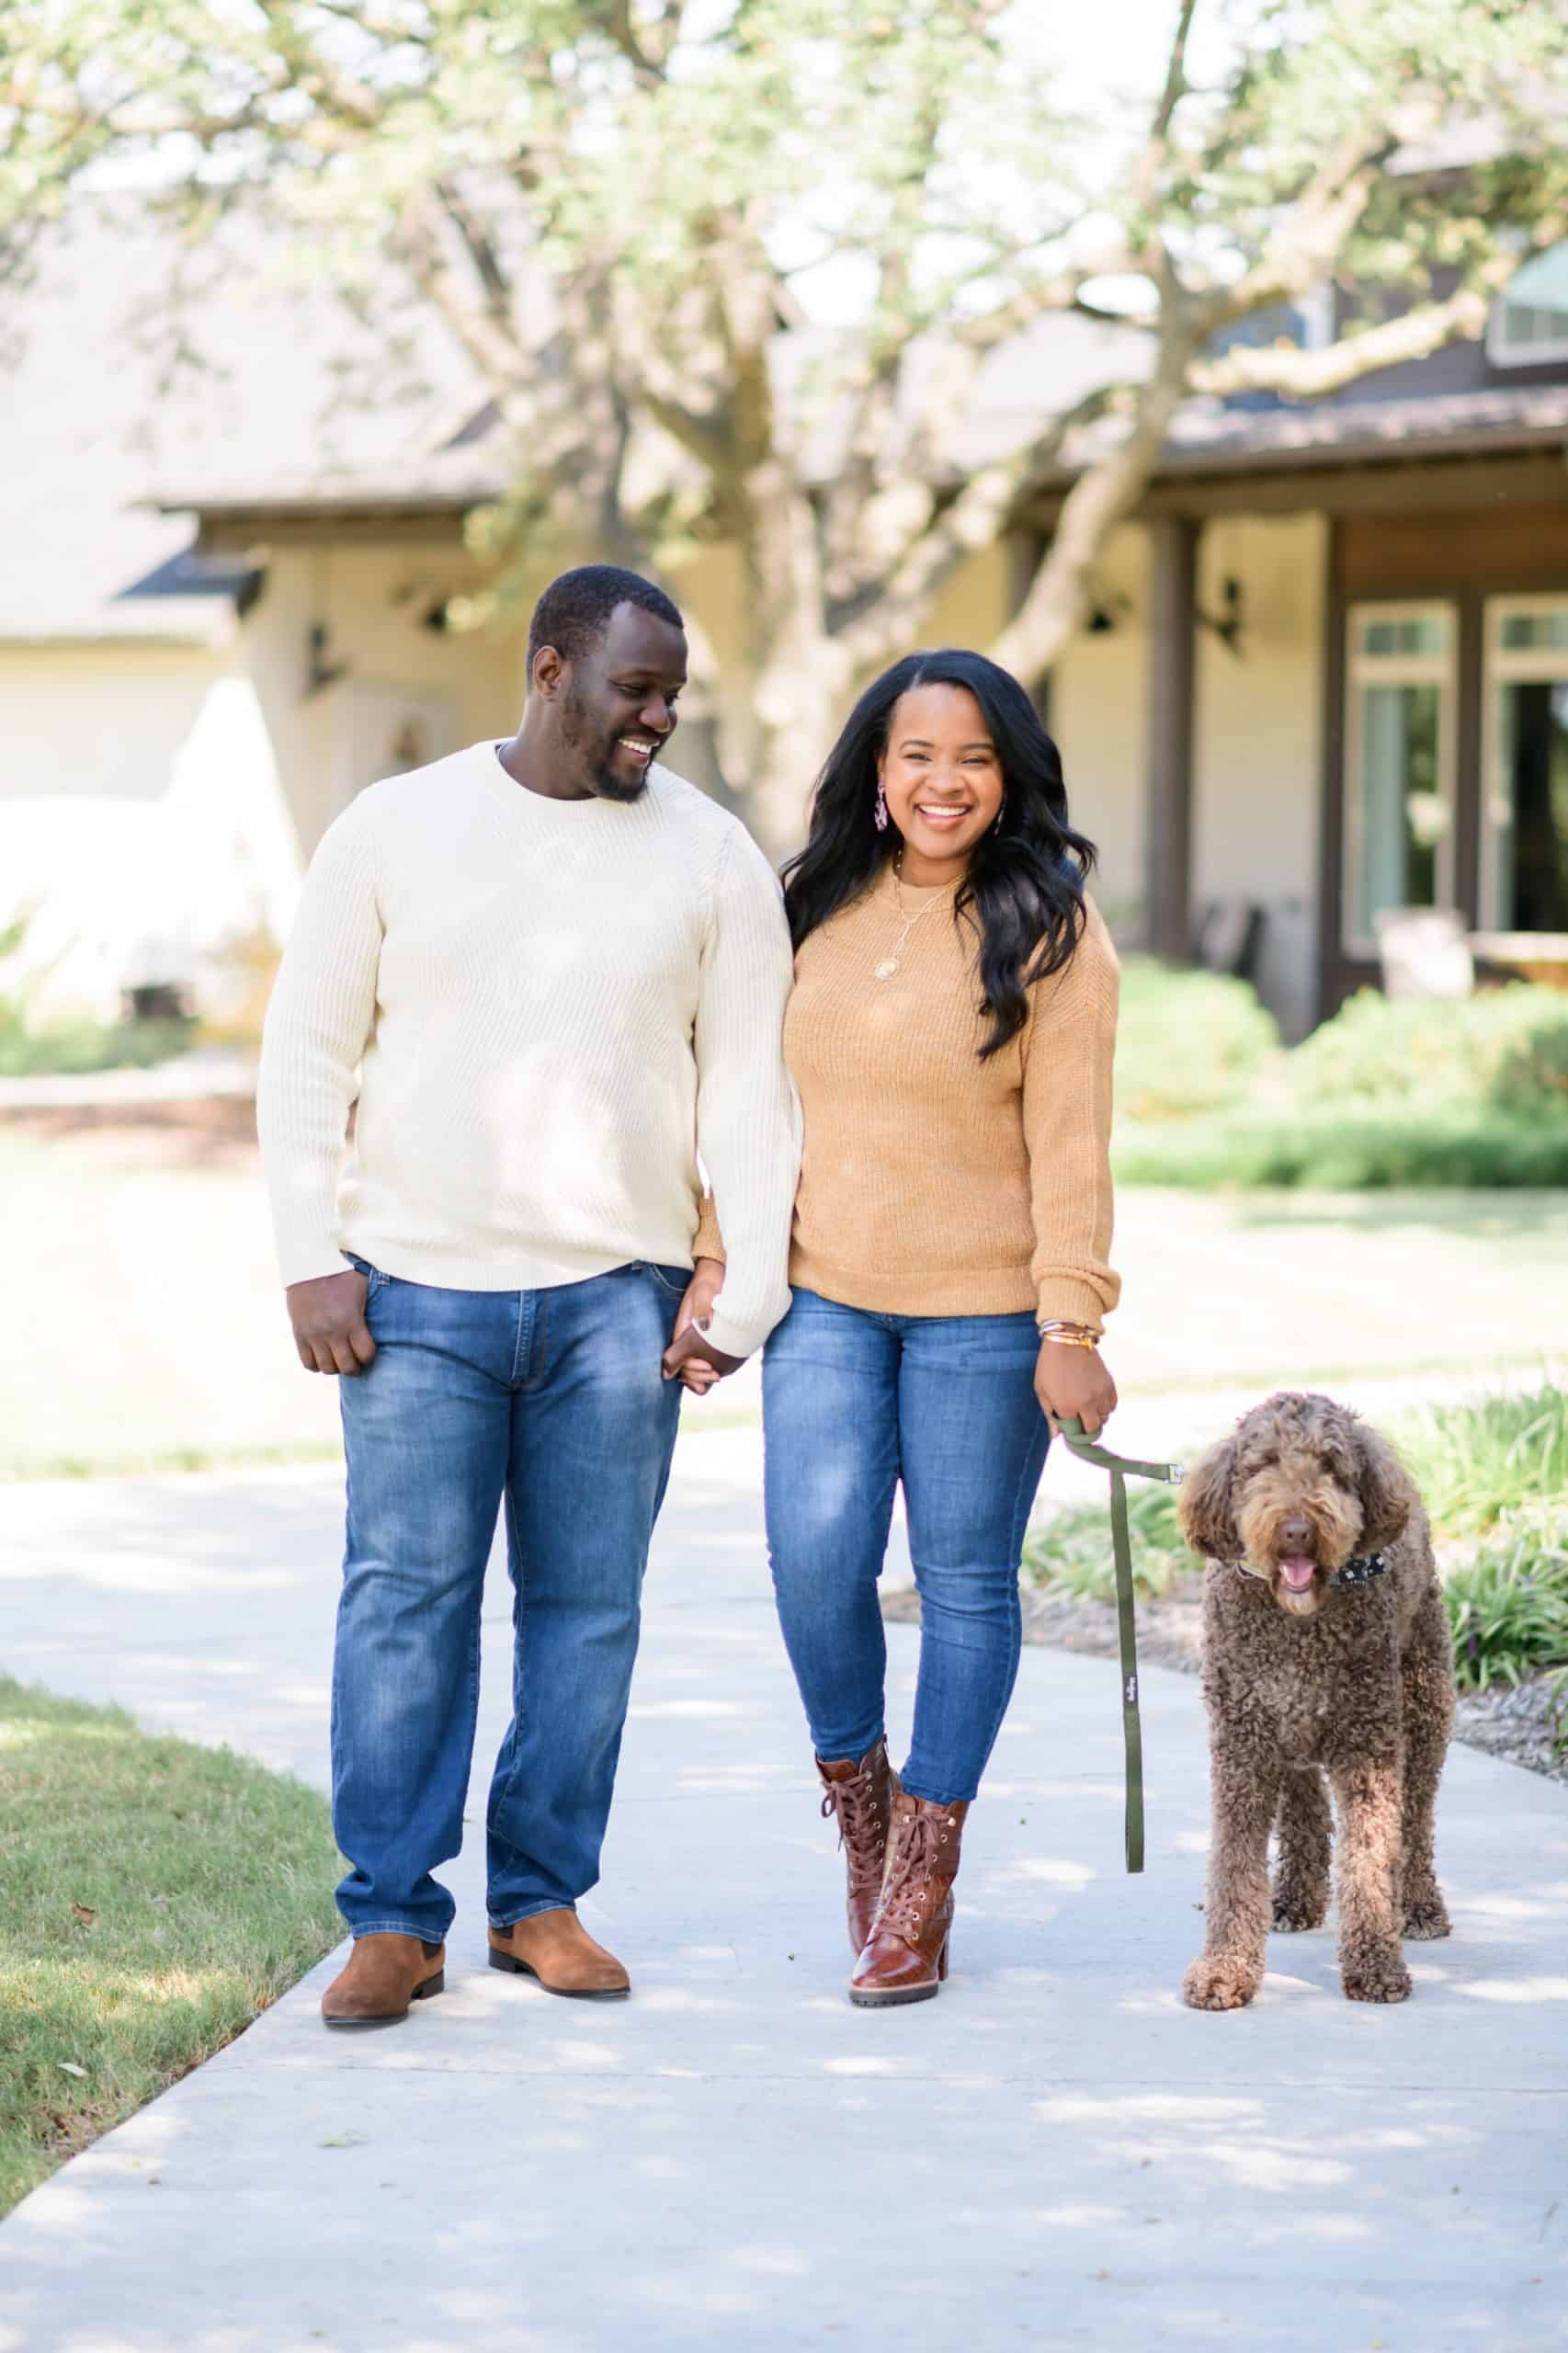 Gifts for Him by popular Dallas life and style blog, Glamorous Versatility: image of husband and wife taking their dog for a walk.